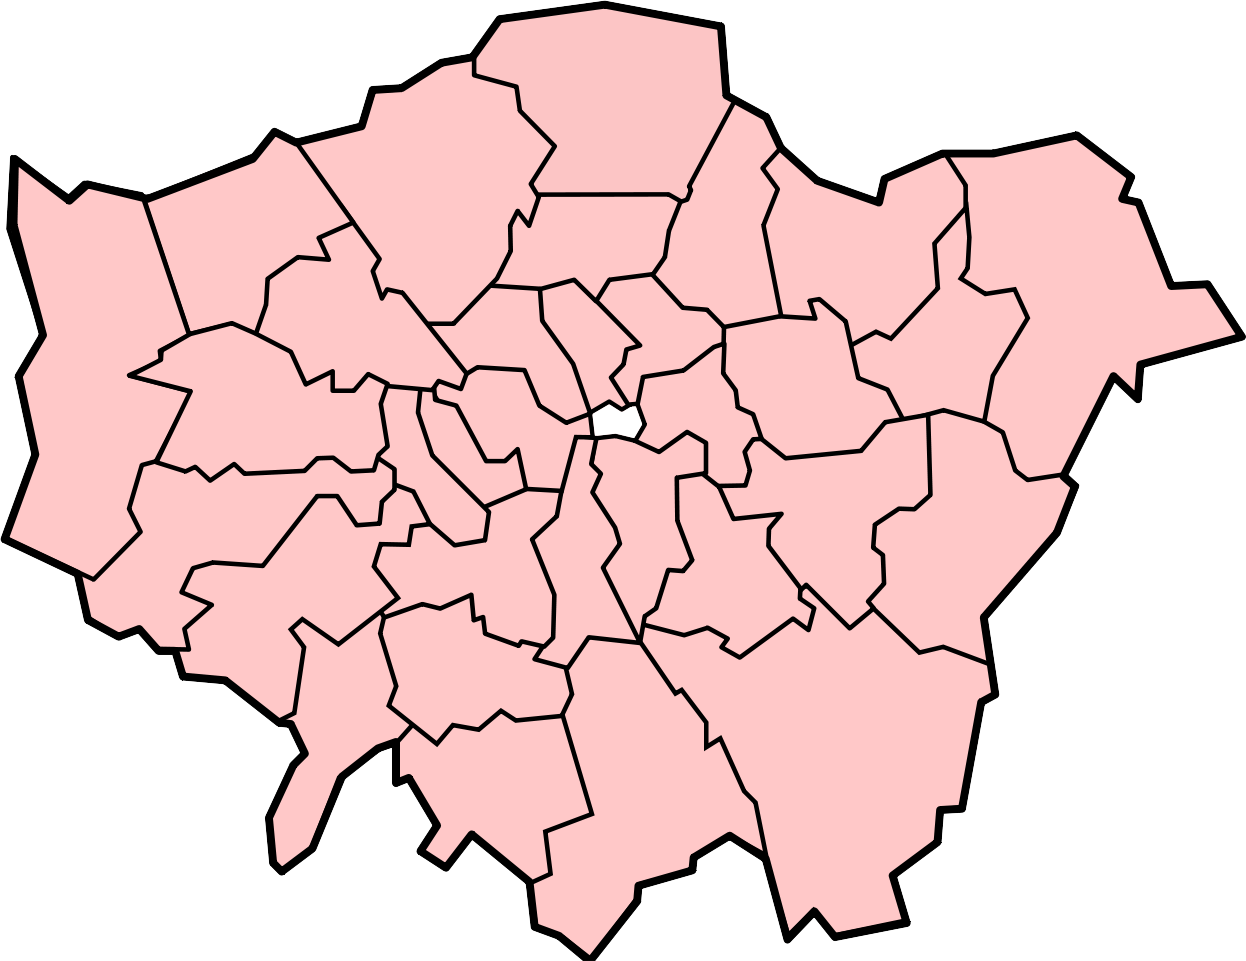 Greater London and it's 32 boughs.